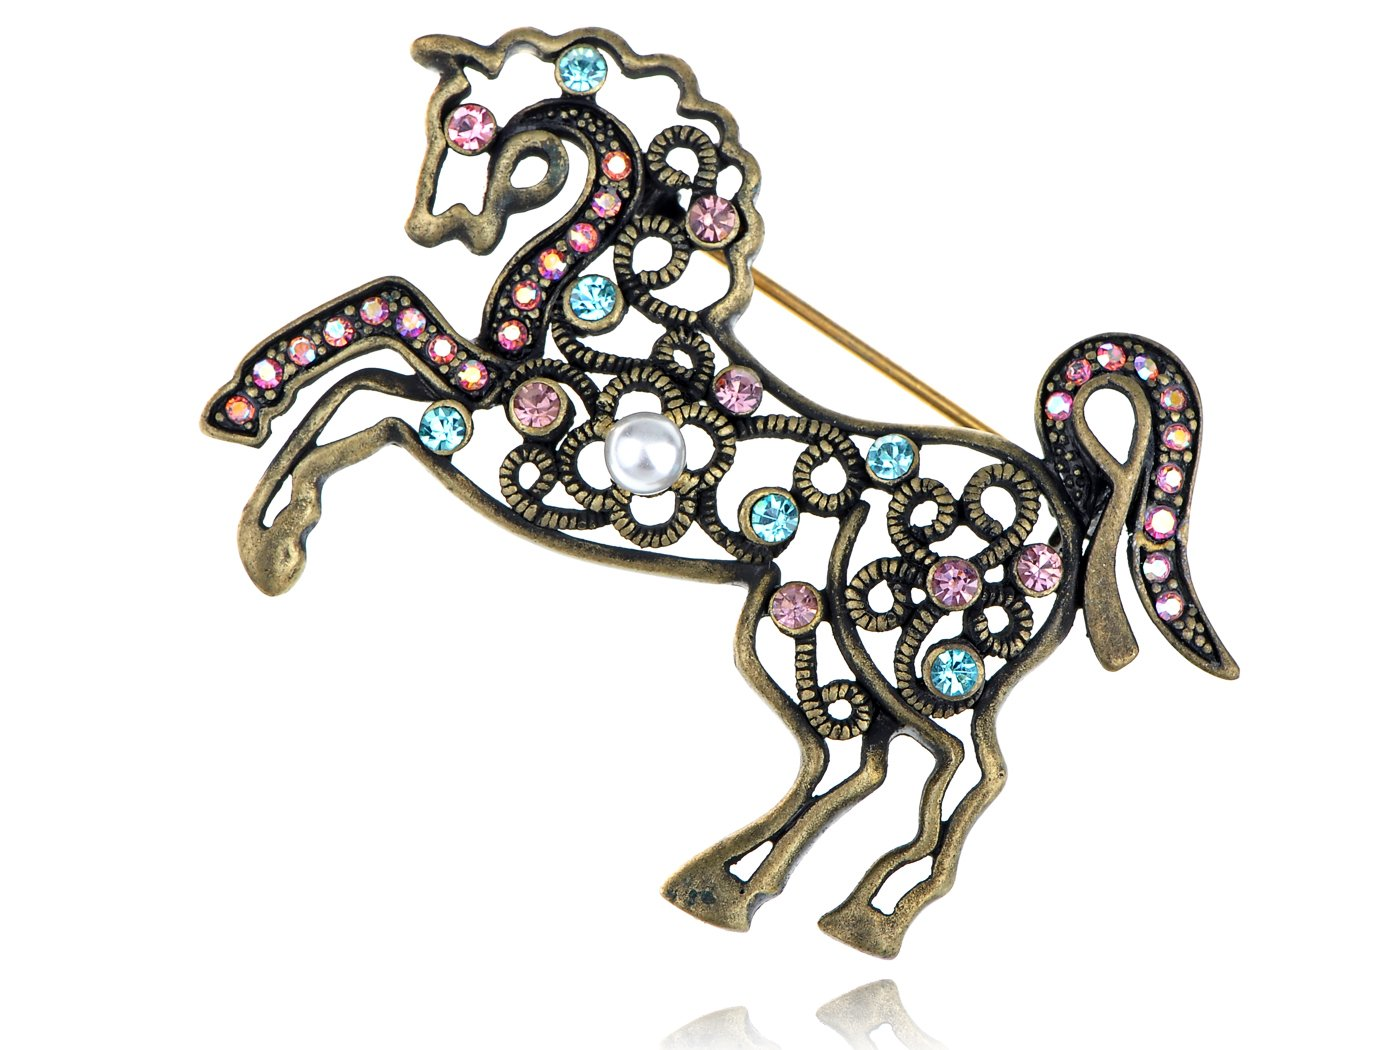 Alilang Brass Tone Pink Turquoise Rhinestones Antique Horse Unicorn Brooch Pin